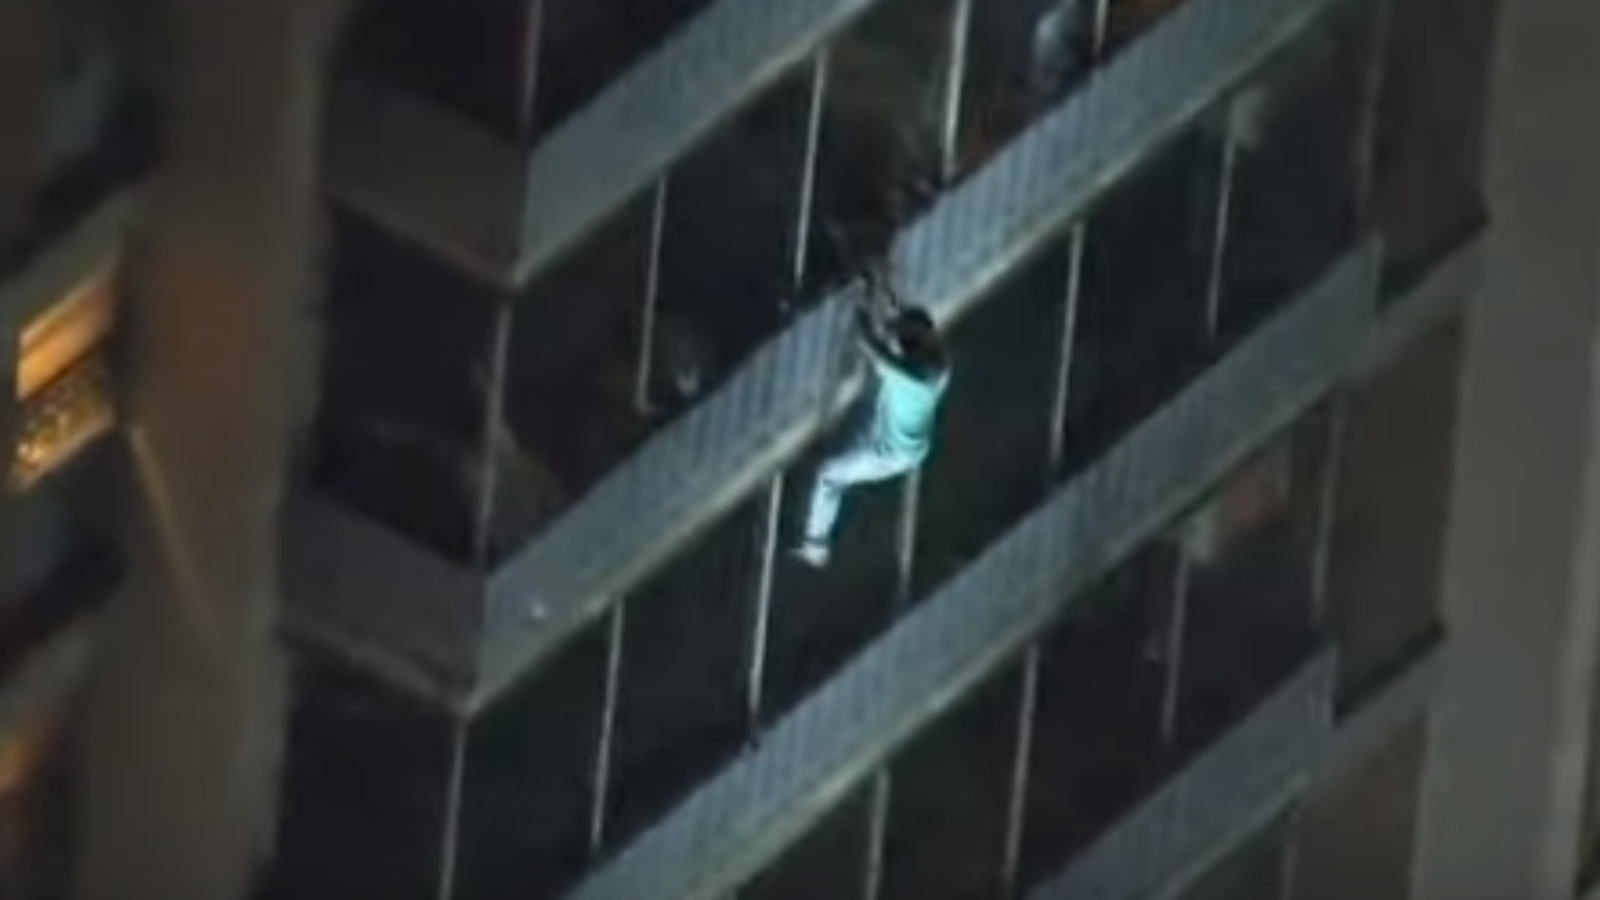 A Philadelphia man's love for his bedridden mother made headlines when he scaled a burning 19-storey building to save her. (YouTube Screenshot)